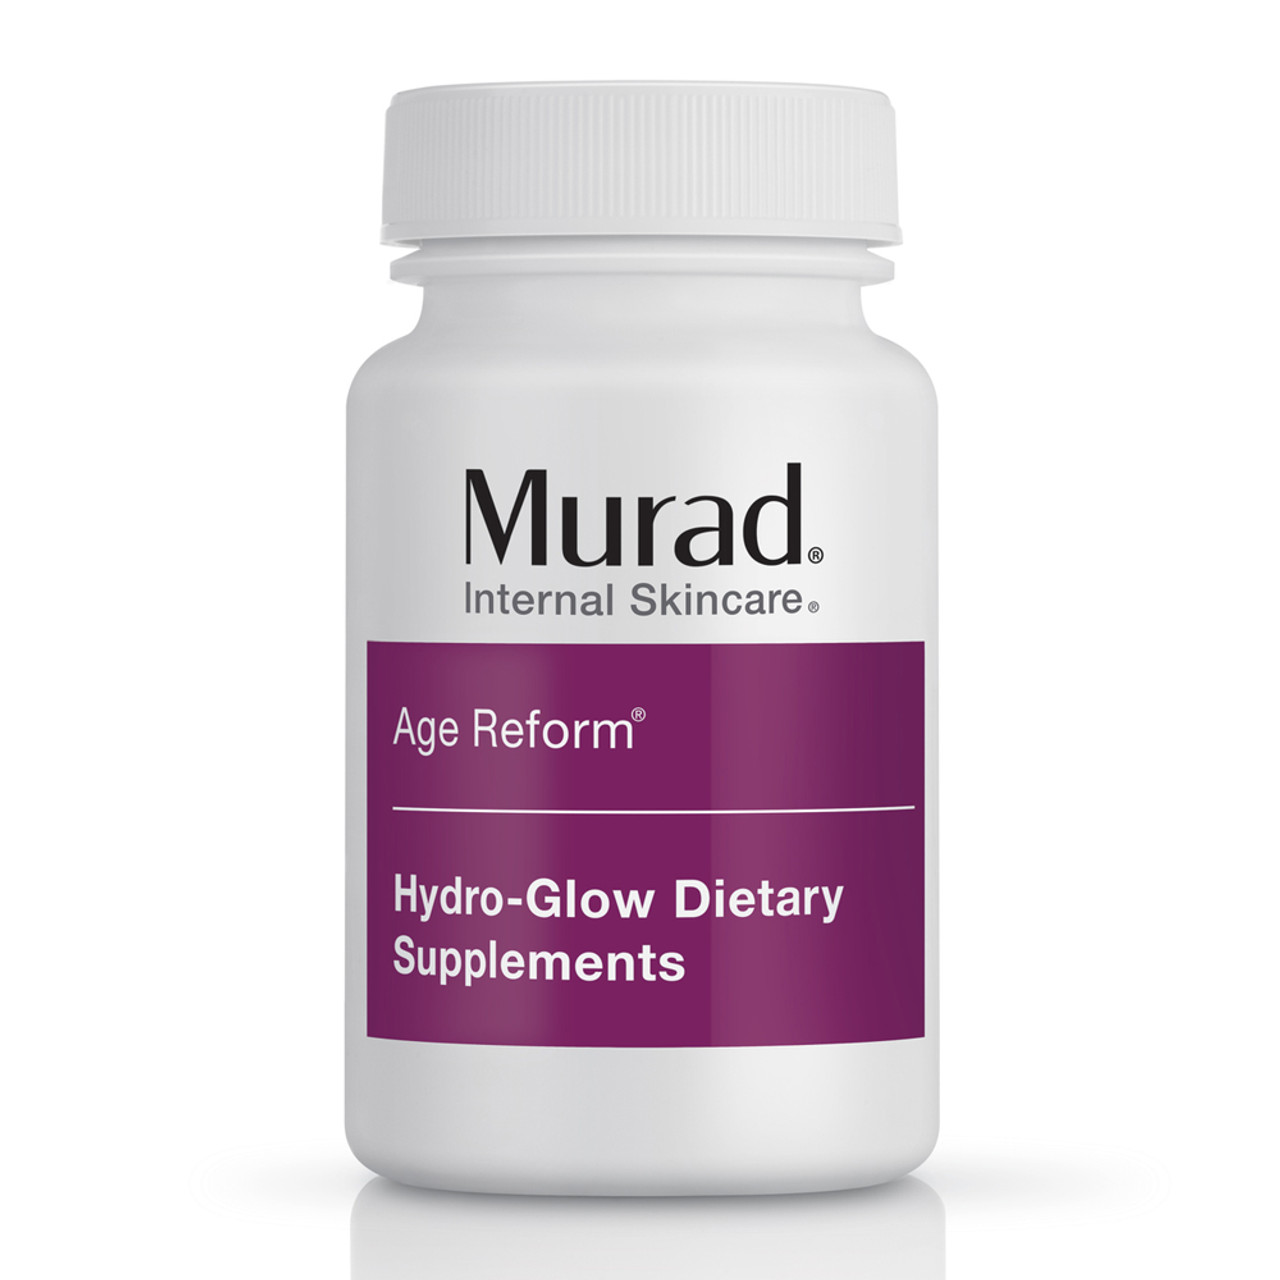 Murad Age Reform™ Hydro-Glow Dietary Supplements